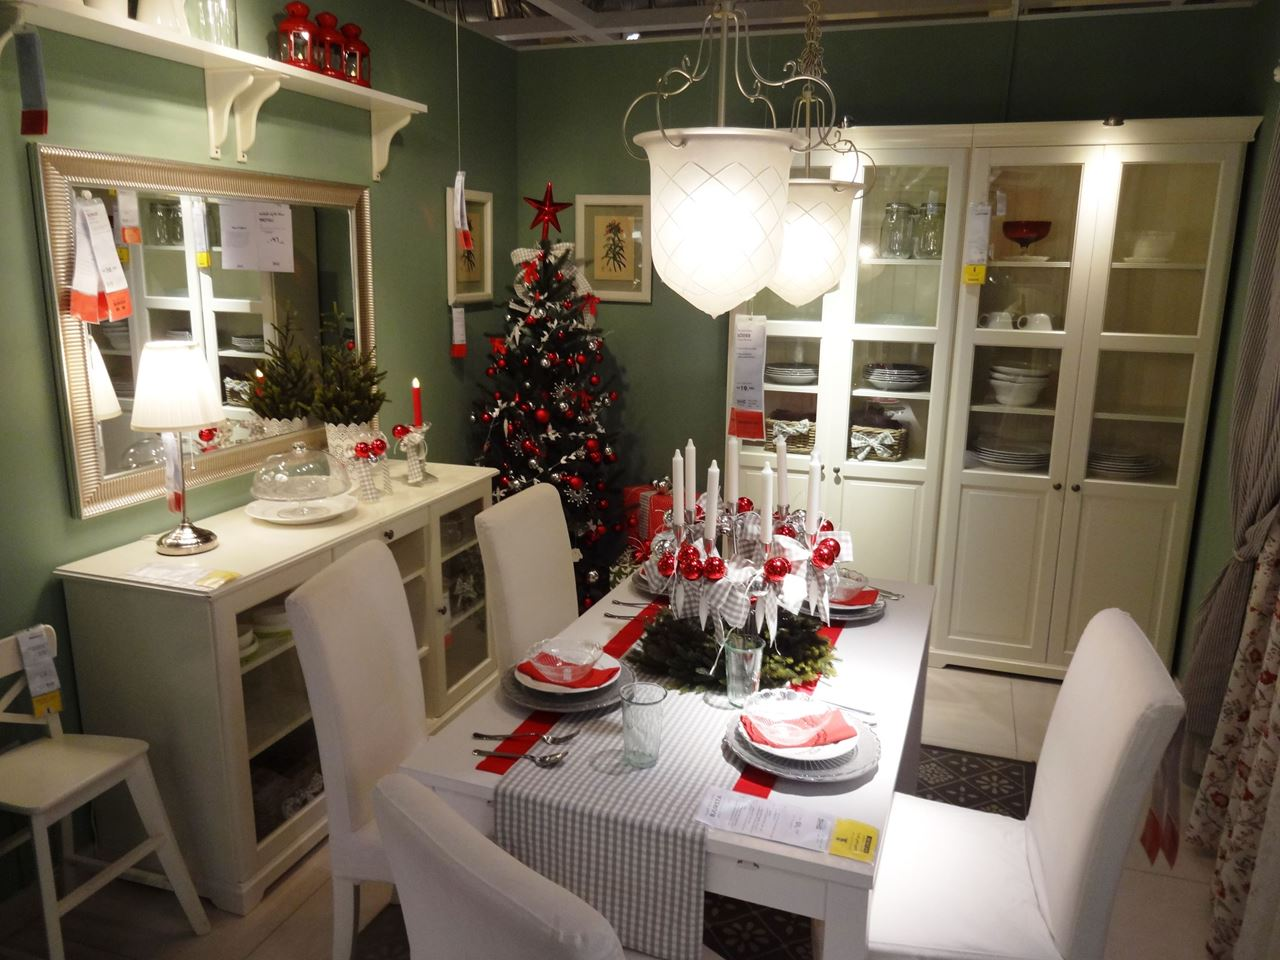 Christmas started at IKEA